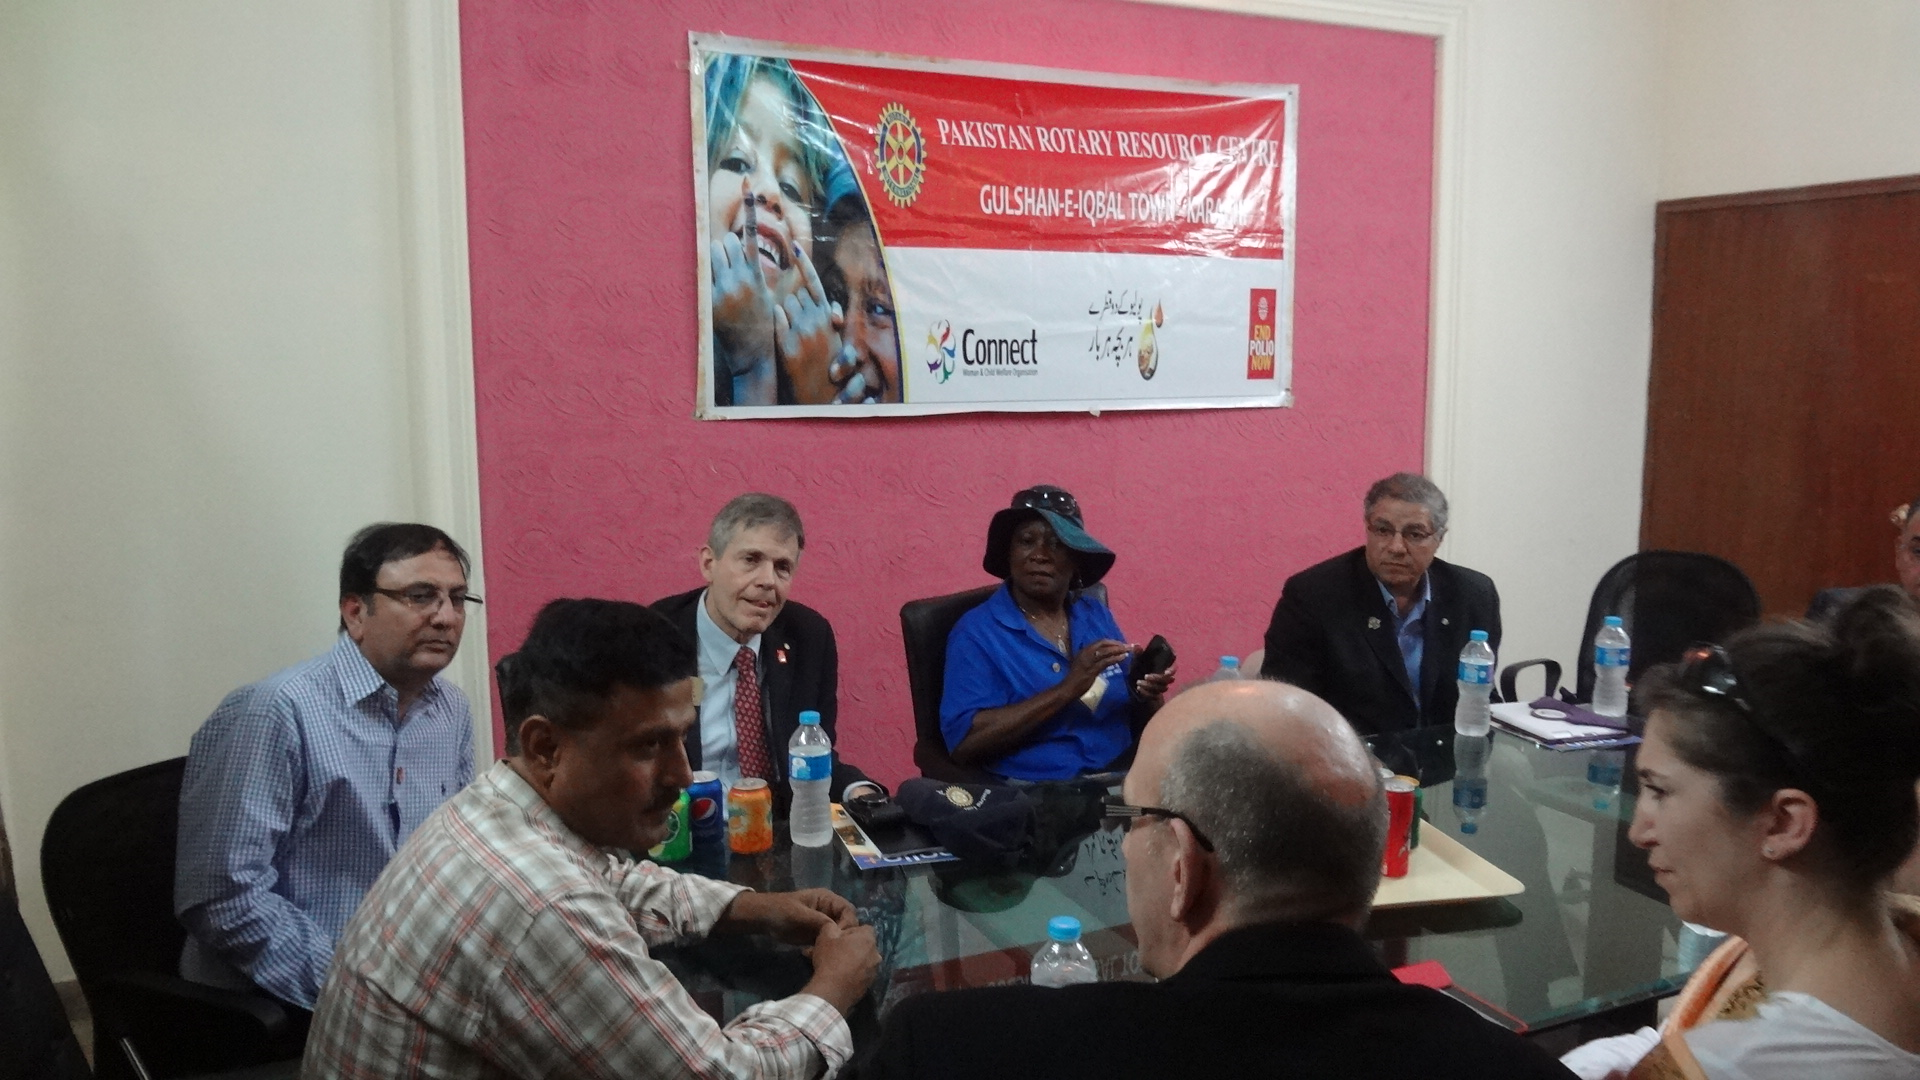 Rotary's Canadian Delegation visited Pakistan Rotary Resource Center